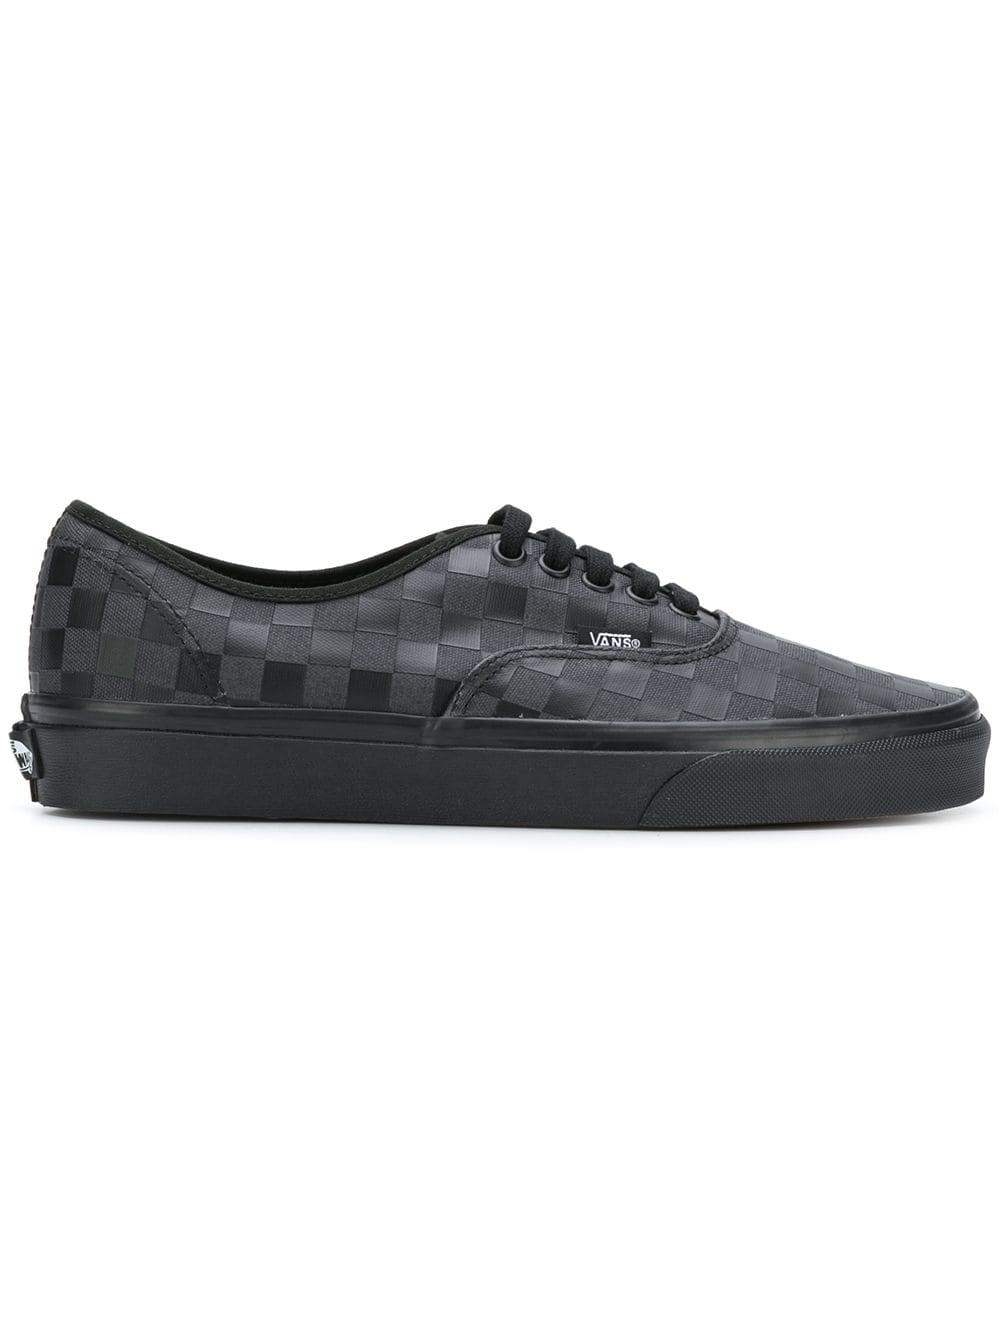 Vans UA Authentique - Noir - VA38EMU5B